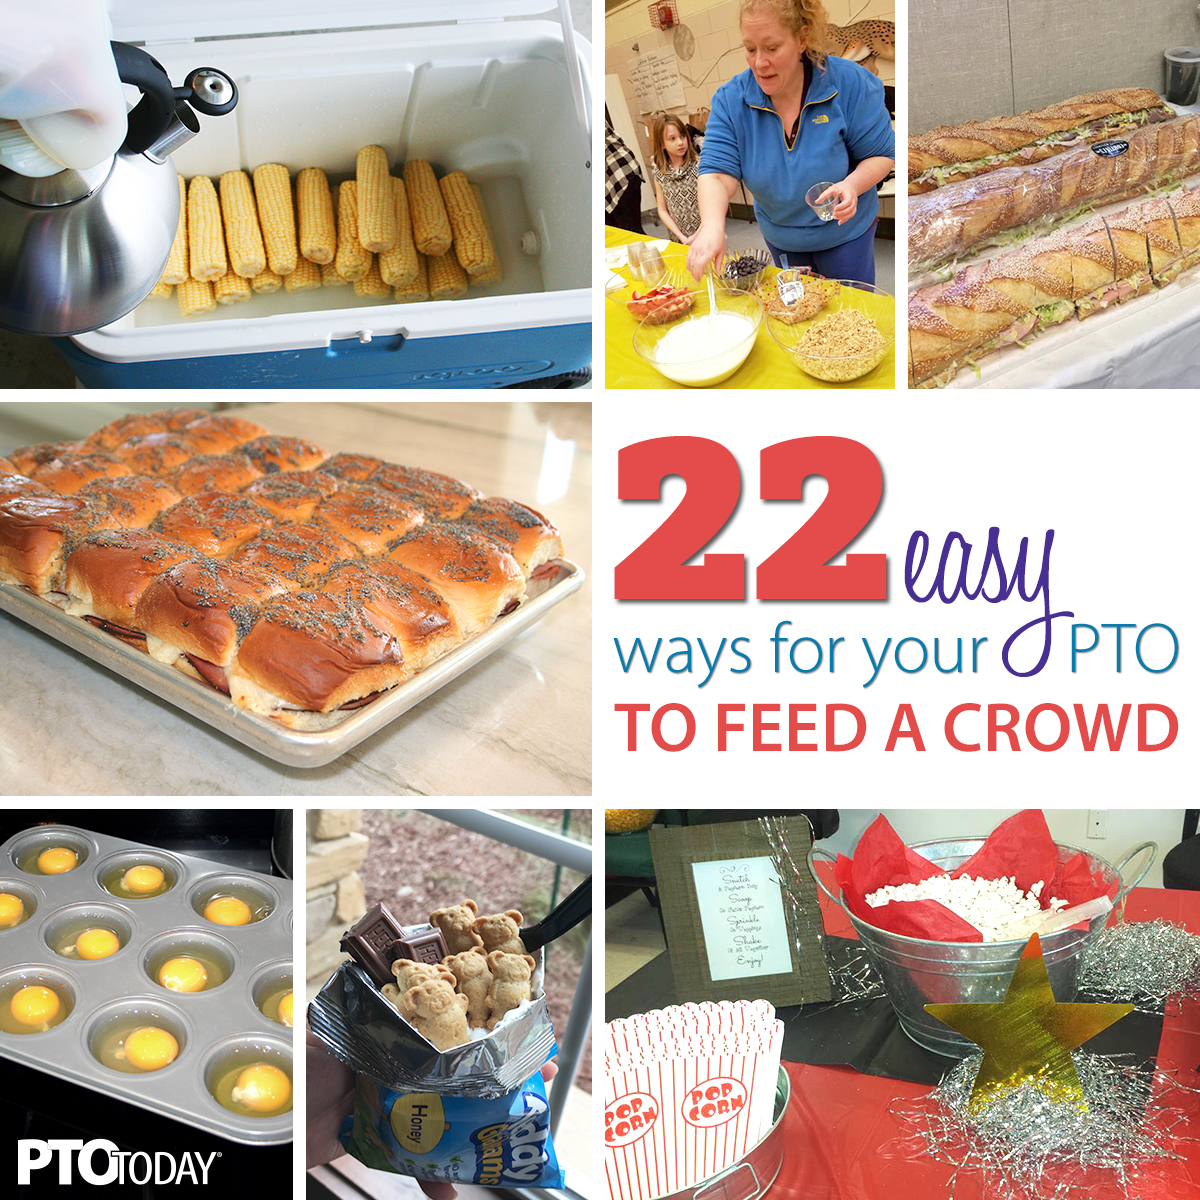 22 easy meal ideas for large groups - pto today